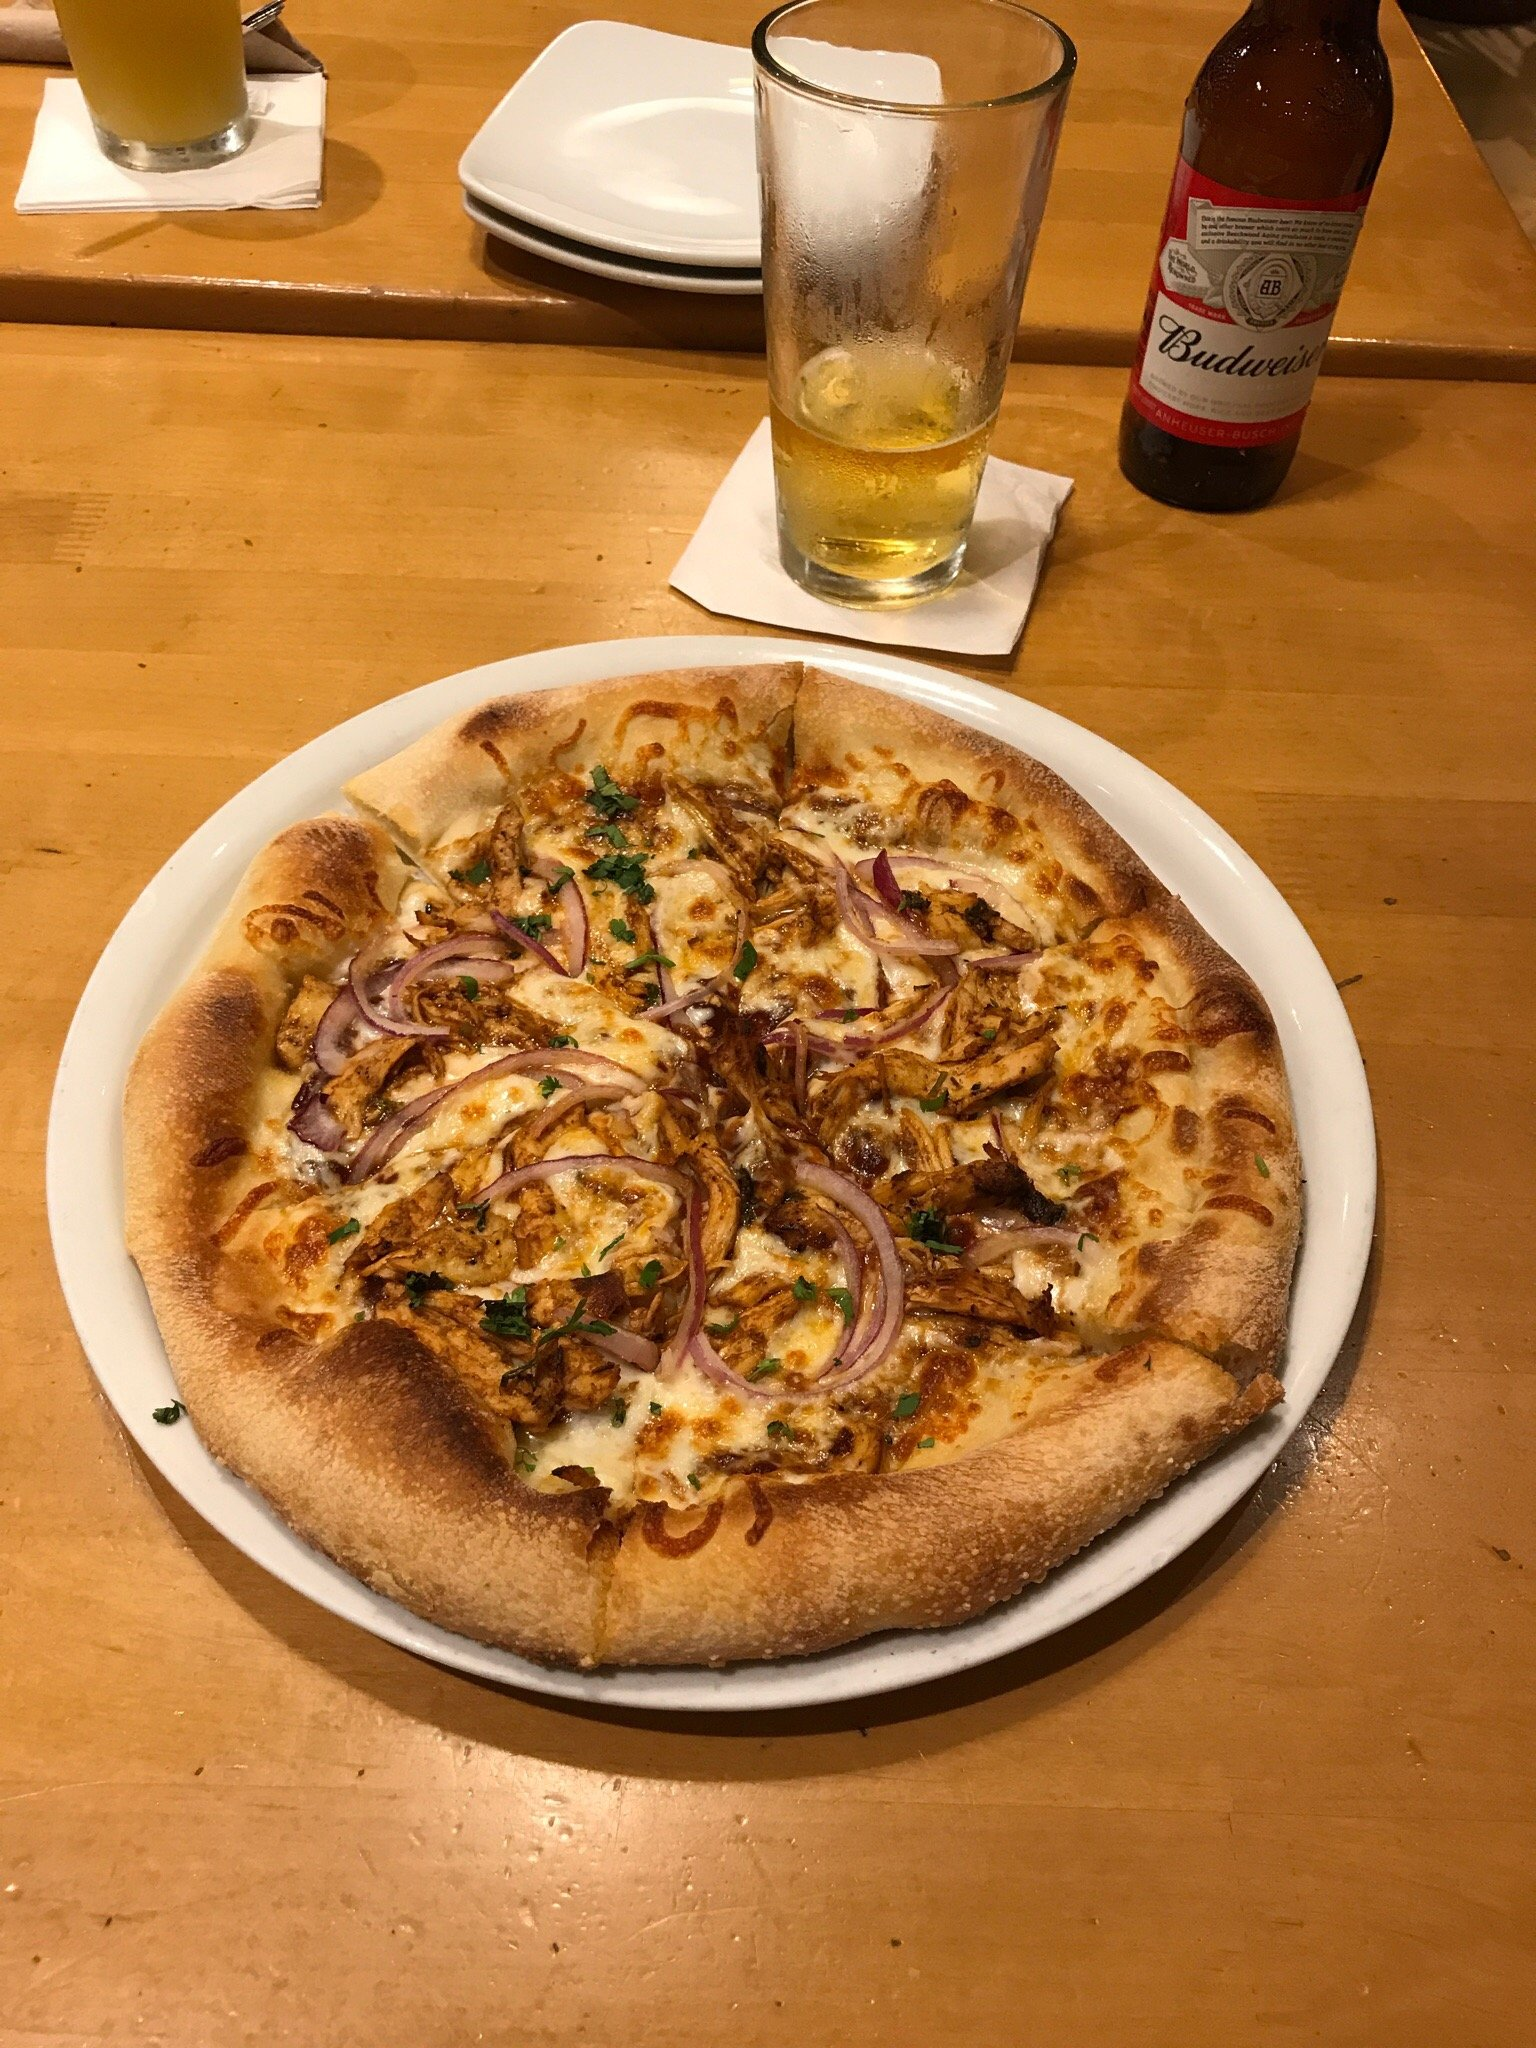 inspirational california pizza kitchen white pizza - taste